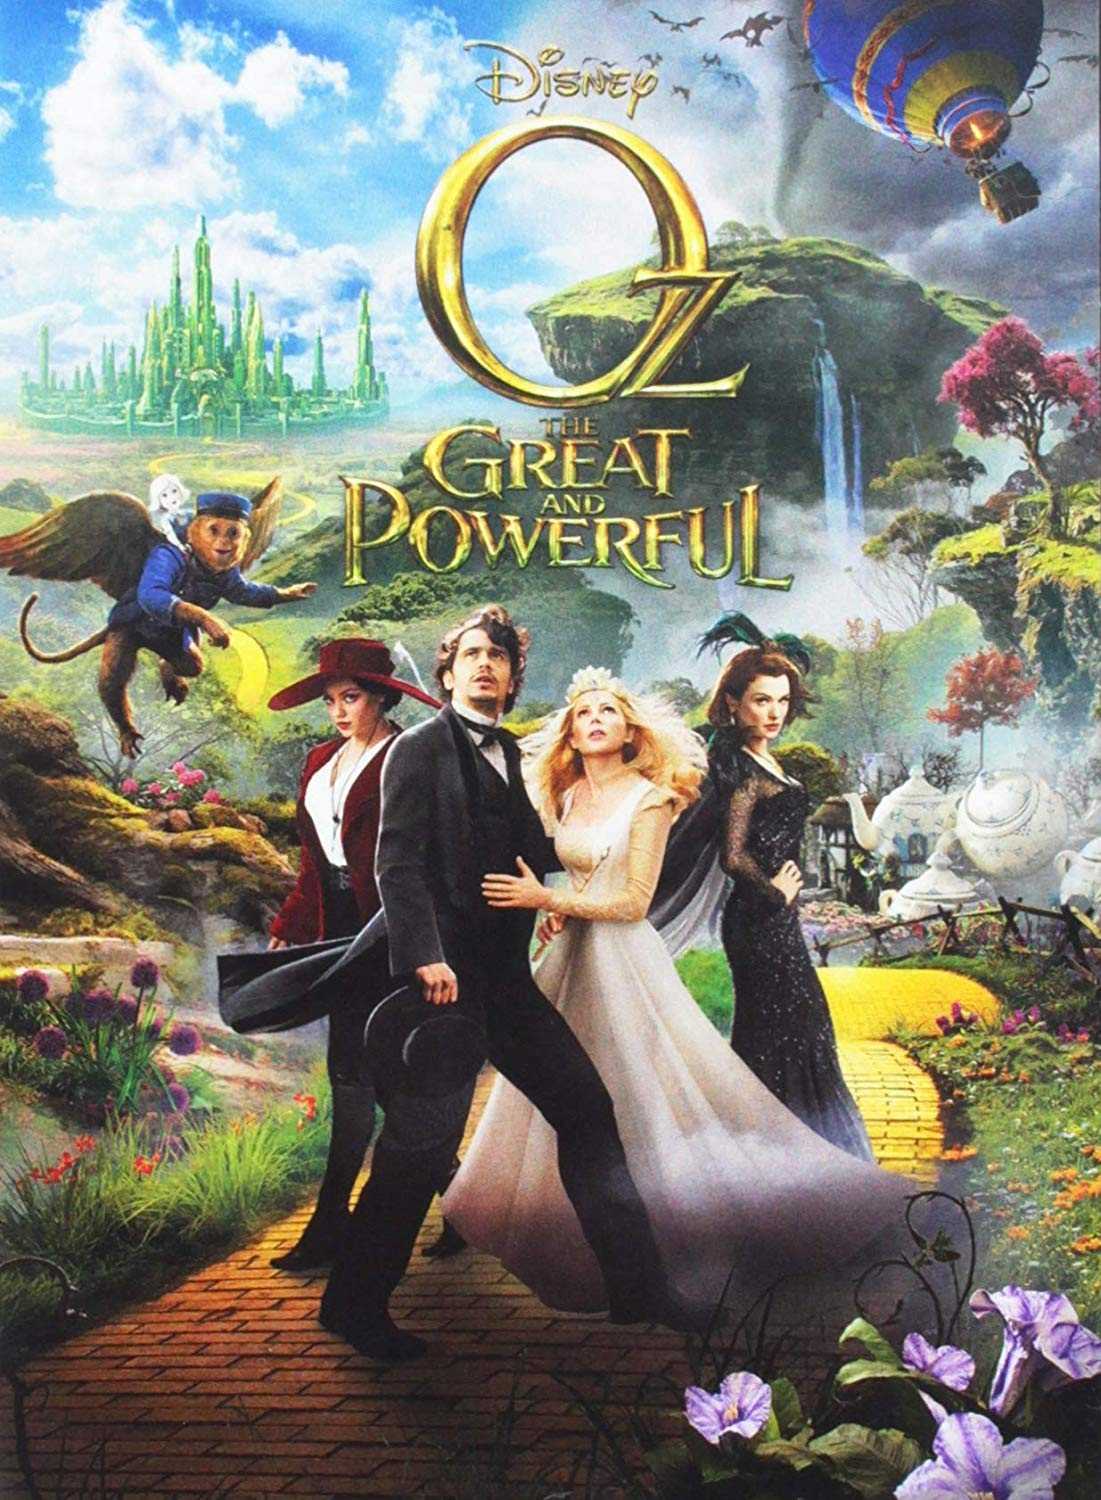 Oz: The Great and Powerful with James Franco is a perfect movie for families   The Dating Divas